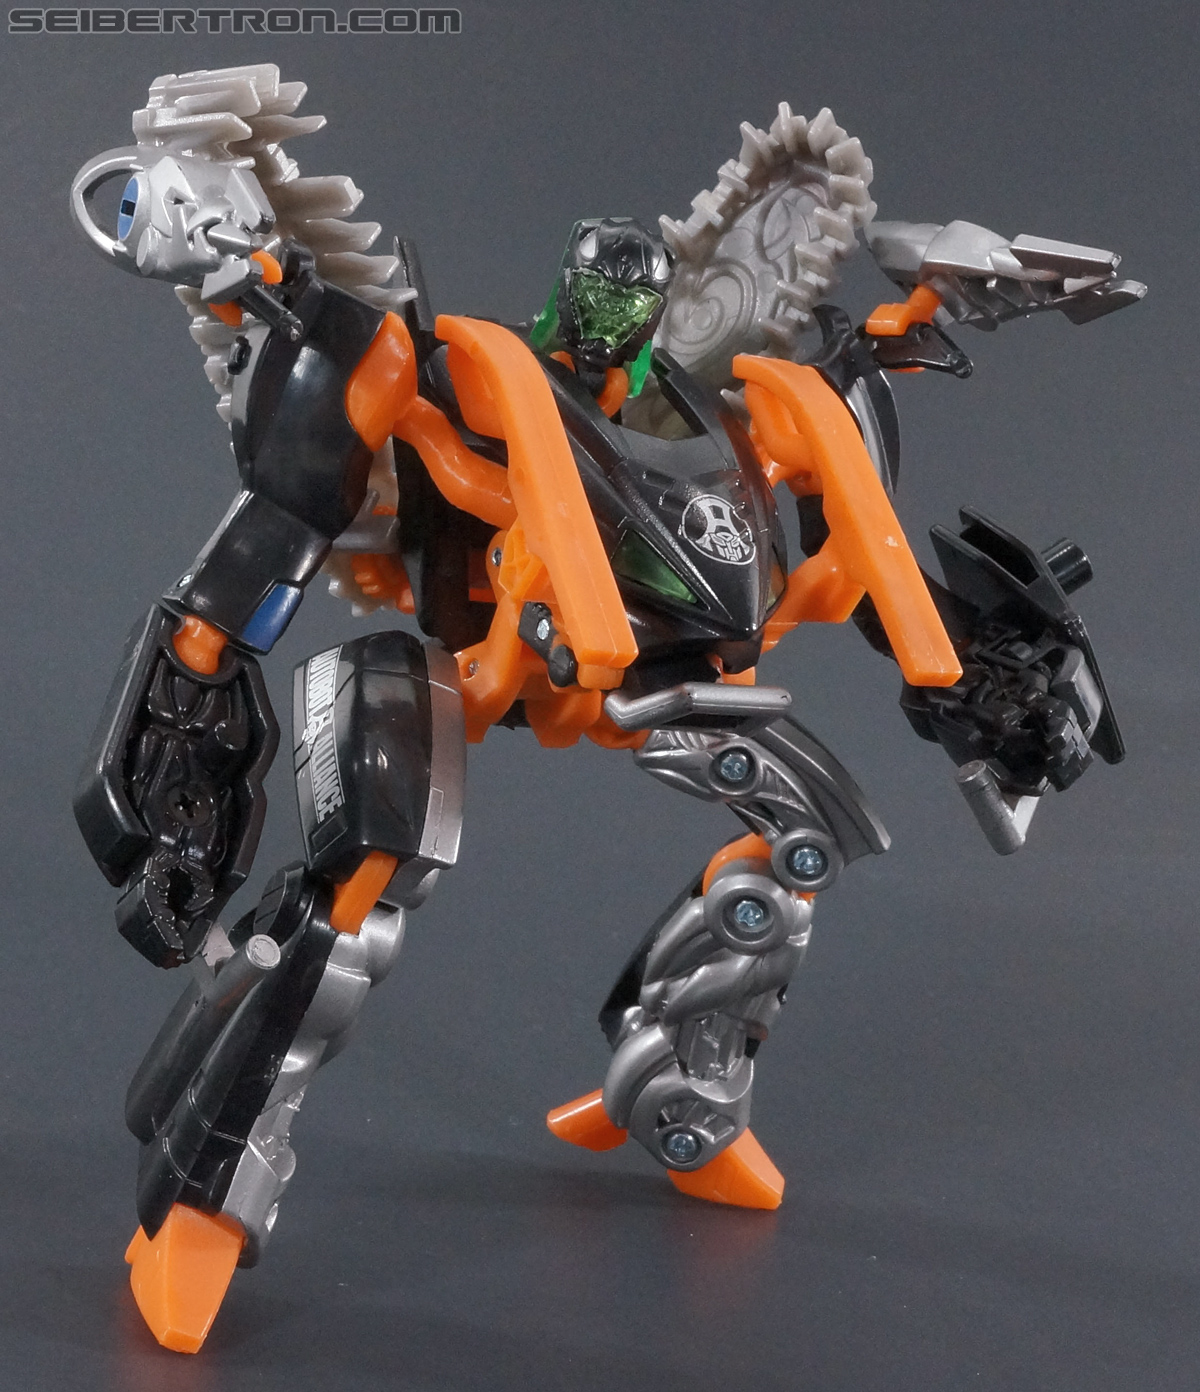 Transformers Dark of the Moon Icepick (Flash Freeze Assault) (Image #92 of 123)